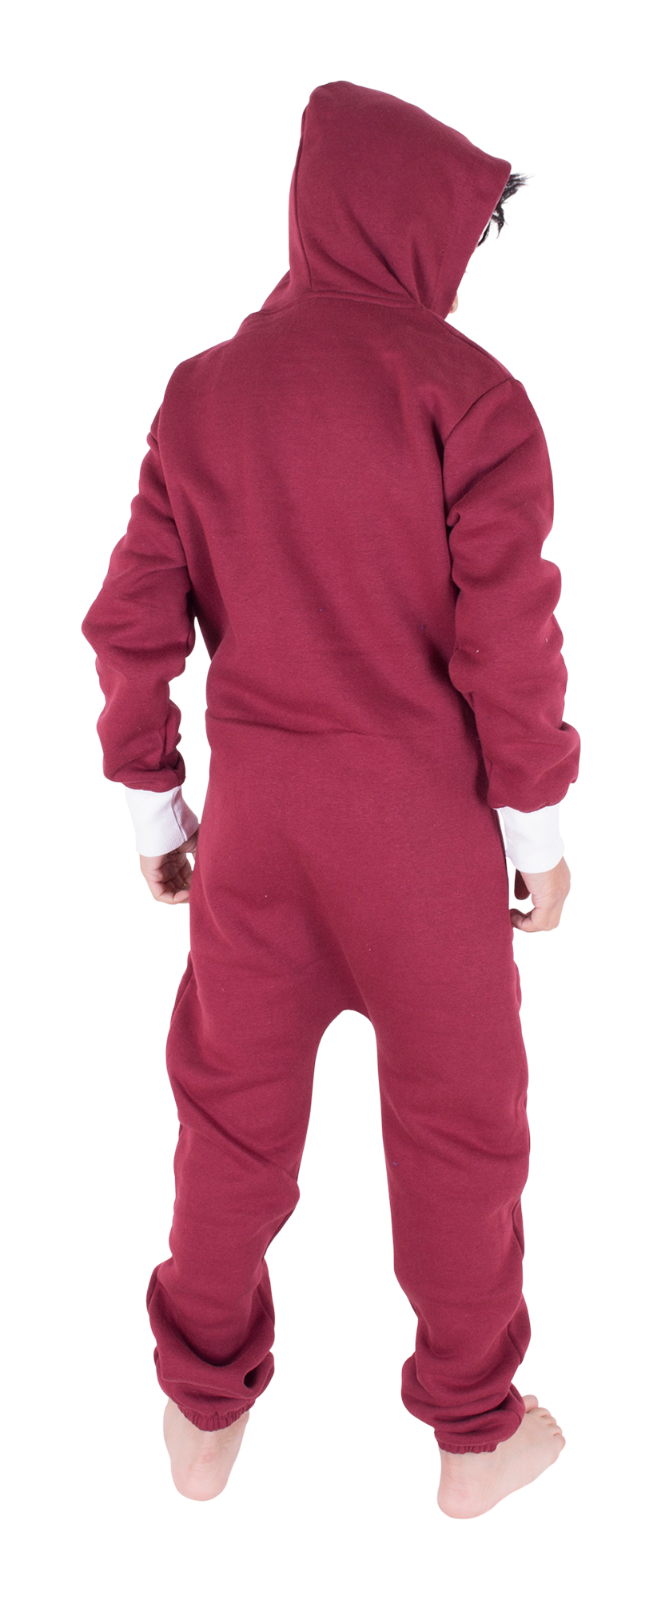 Kids Boys Girls Plain Hooded 1Onesie All in one Jumpsuit Playsuit Sizes 7-13 YRS 12